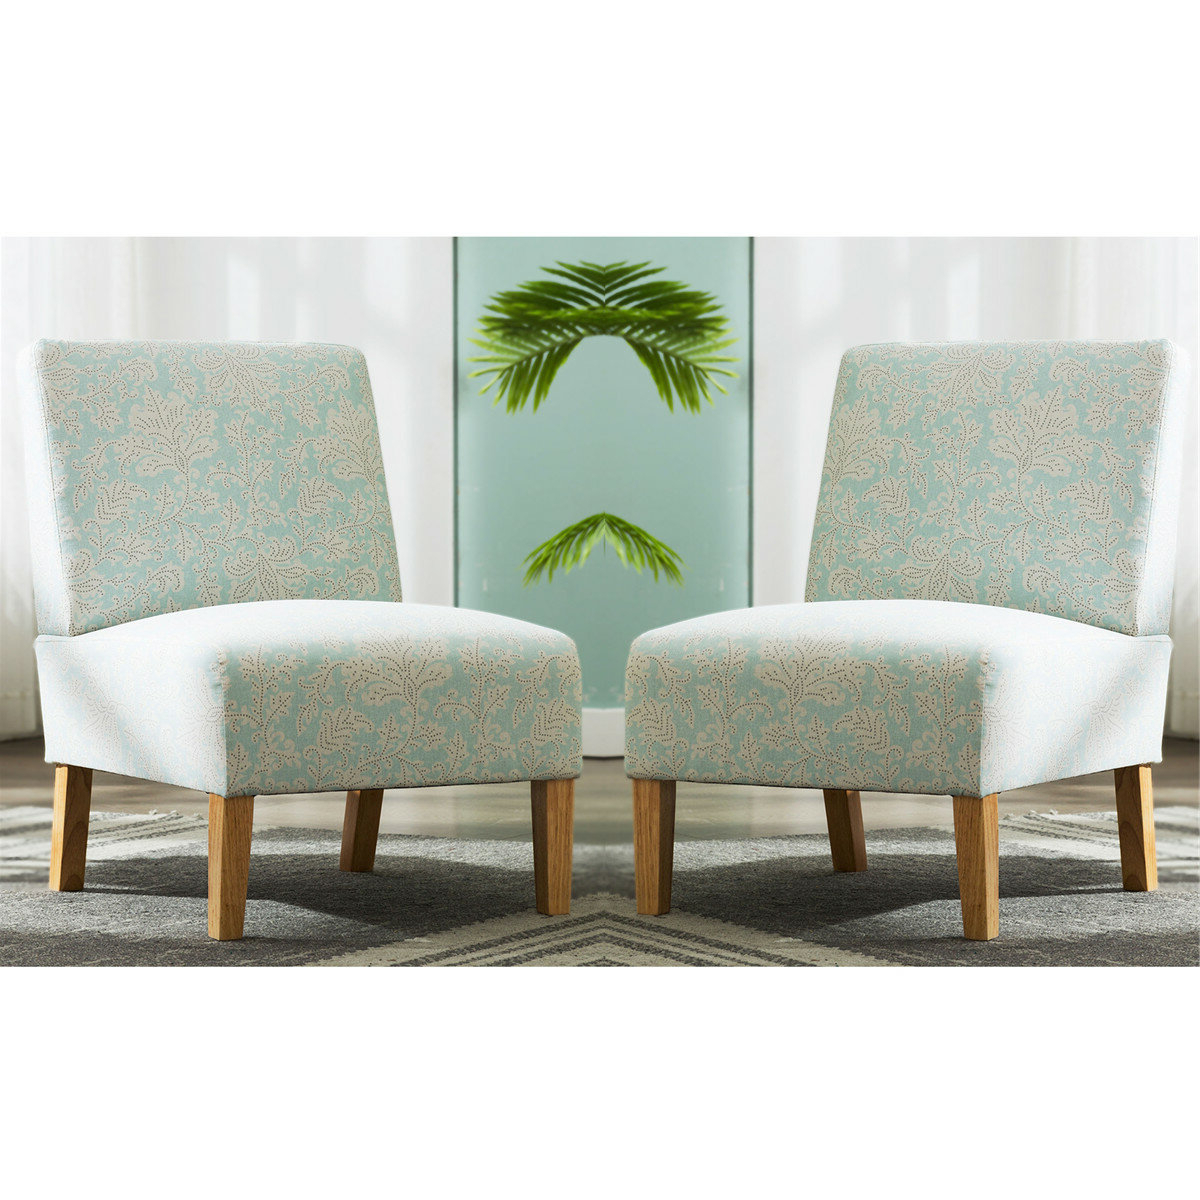 "Best And Newest Goodspeed Slipper Chairs (set Of 2) In Kiska 21"" Slipper Chair (View 12 of 20)"